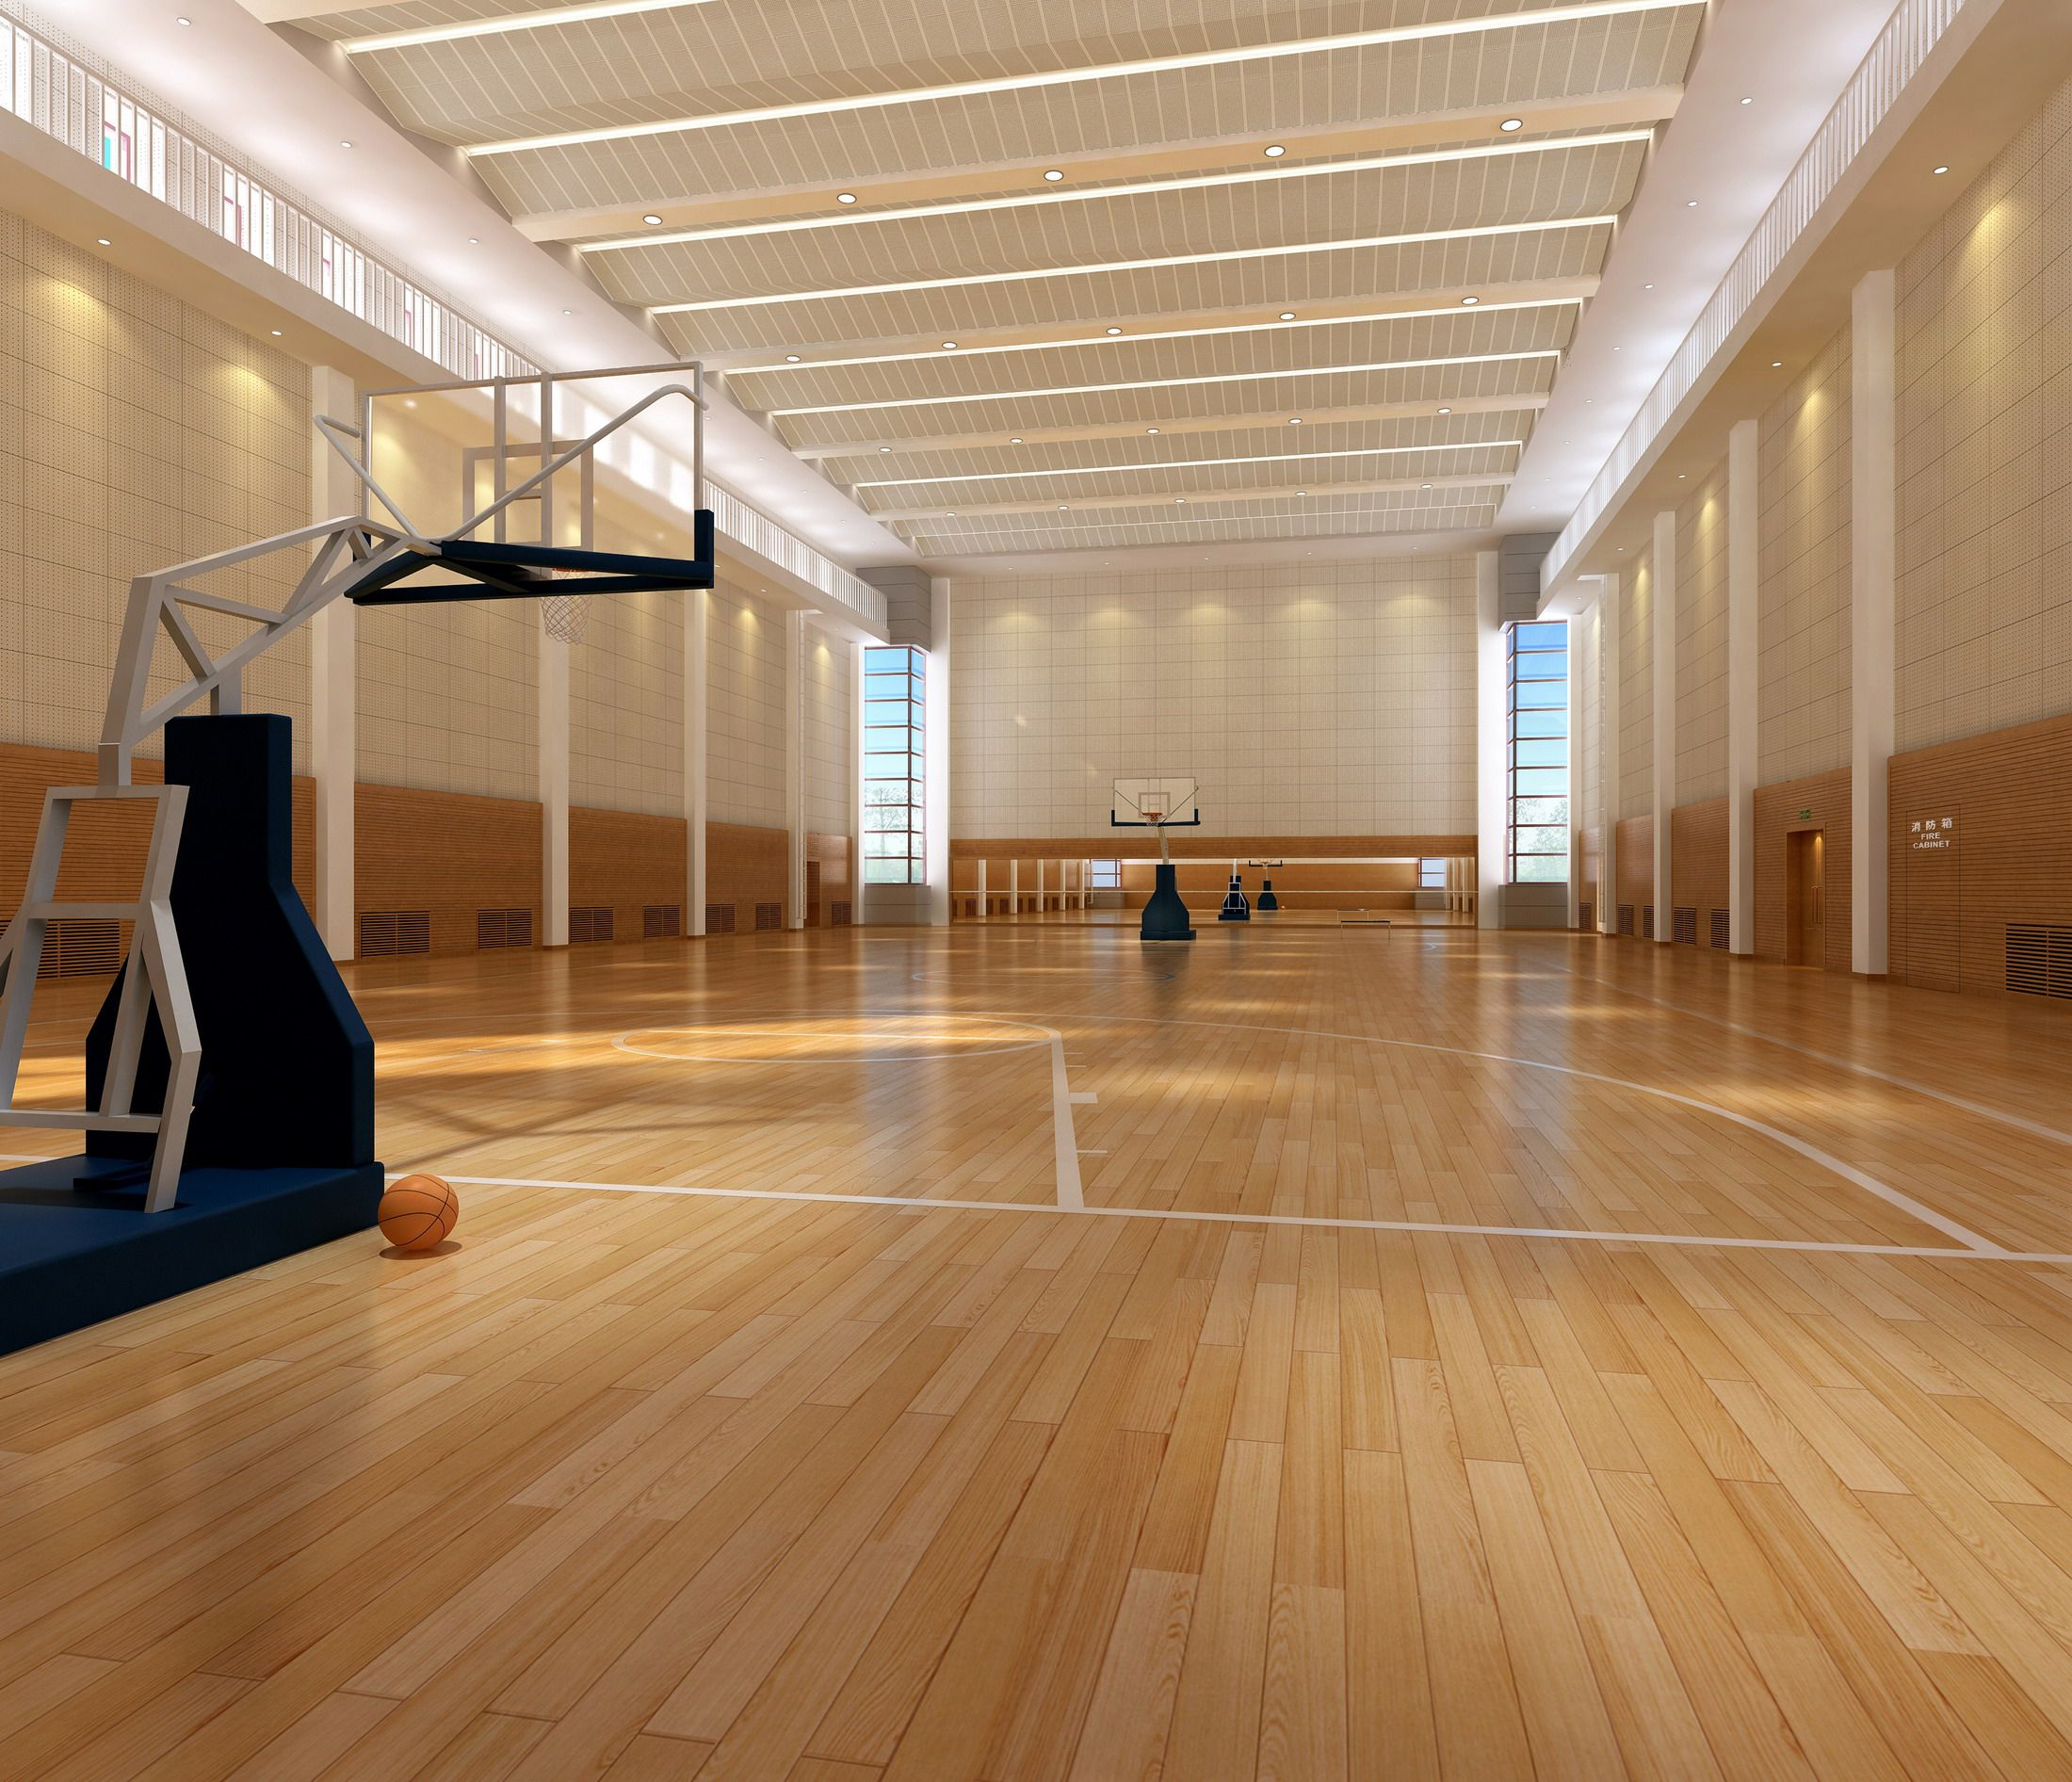 Basketball Gymnasium Arena 002 3d Model Flatpyramid Indoor Basketball Court Home Basketball Court Indoor Basketball